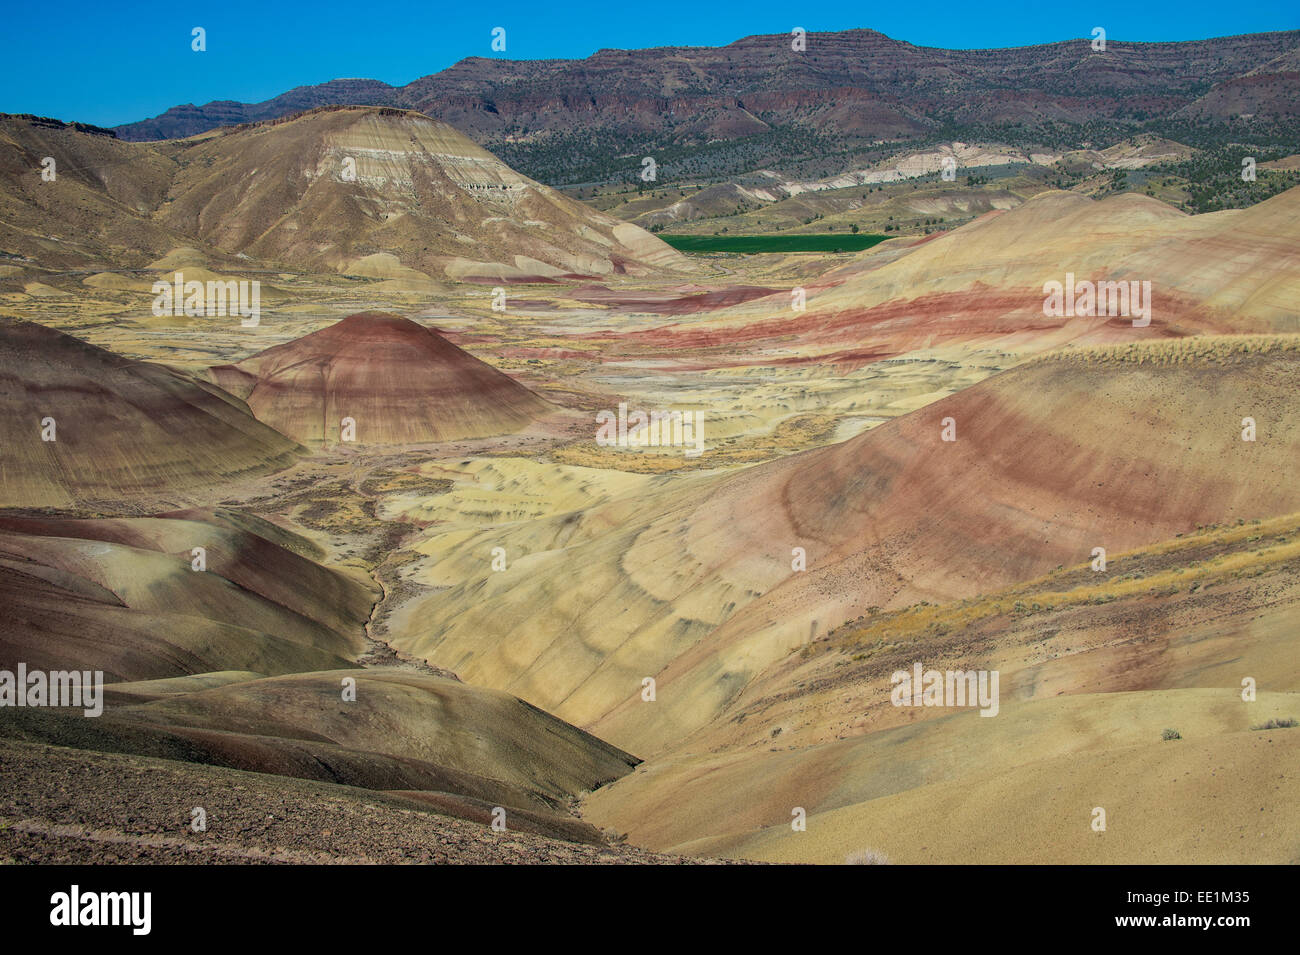 The colourful hills of the Painted Hills unit in the John Day Fossil Beds National Monument, Oregon, United States - Stock Image